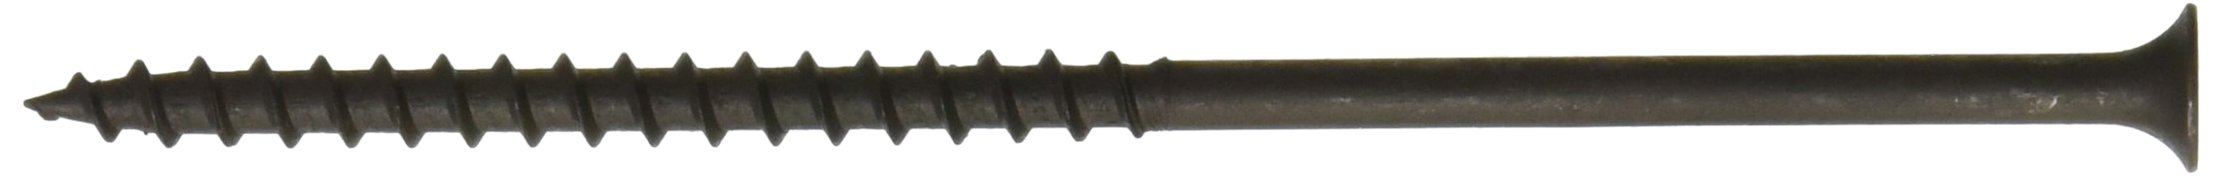 The Hillman Group 47783 10-Inch x 4-1/2-Inch Coarse Thread Drywall Screw with Square Drive